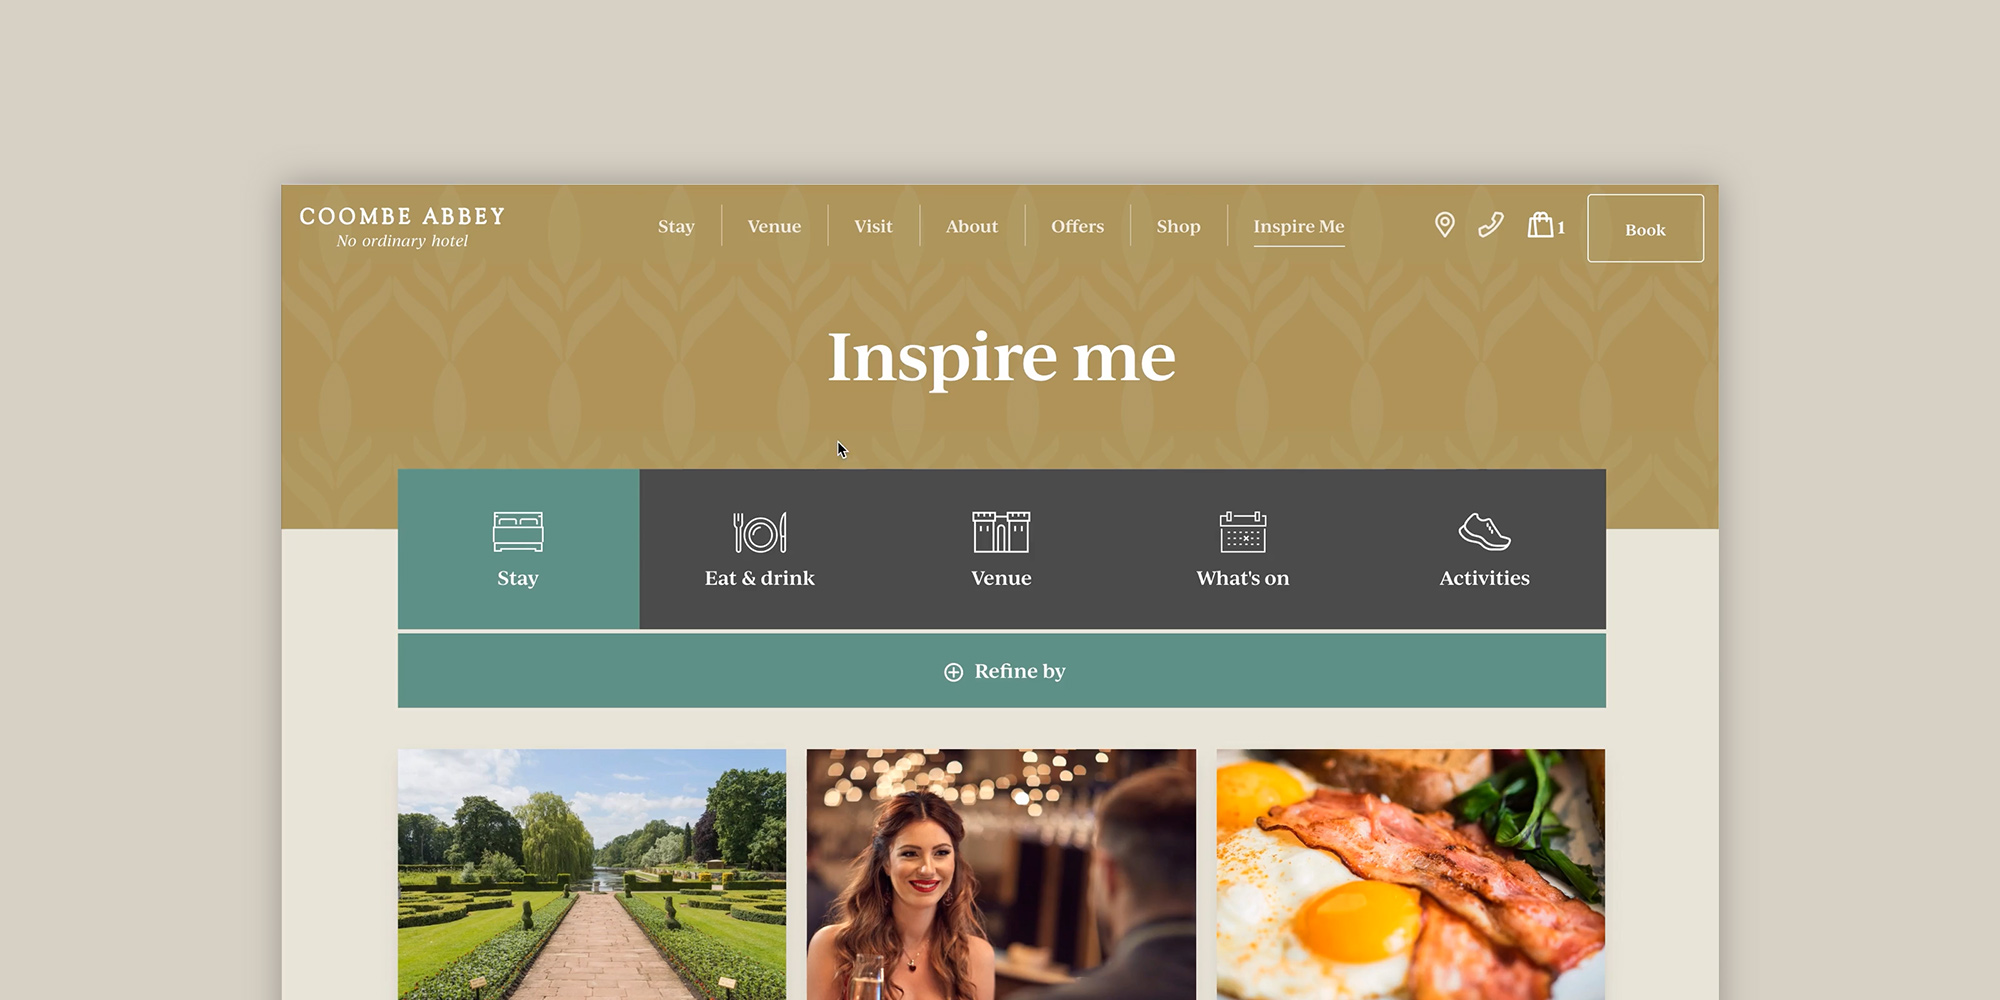 Coombe Abbey inspire me tool